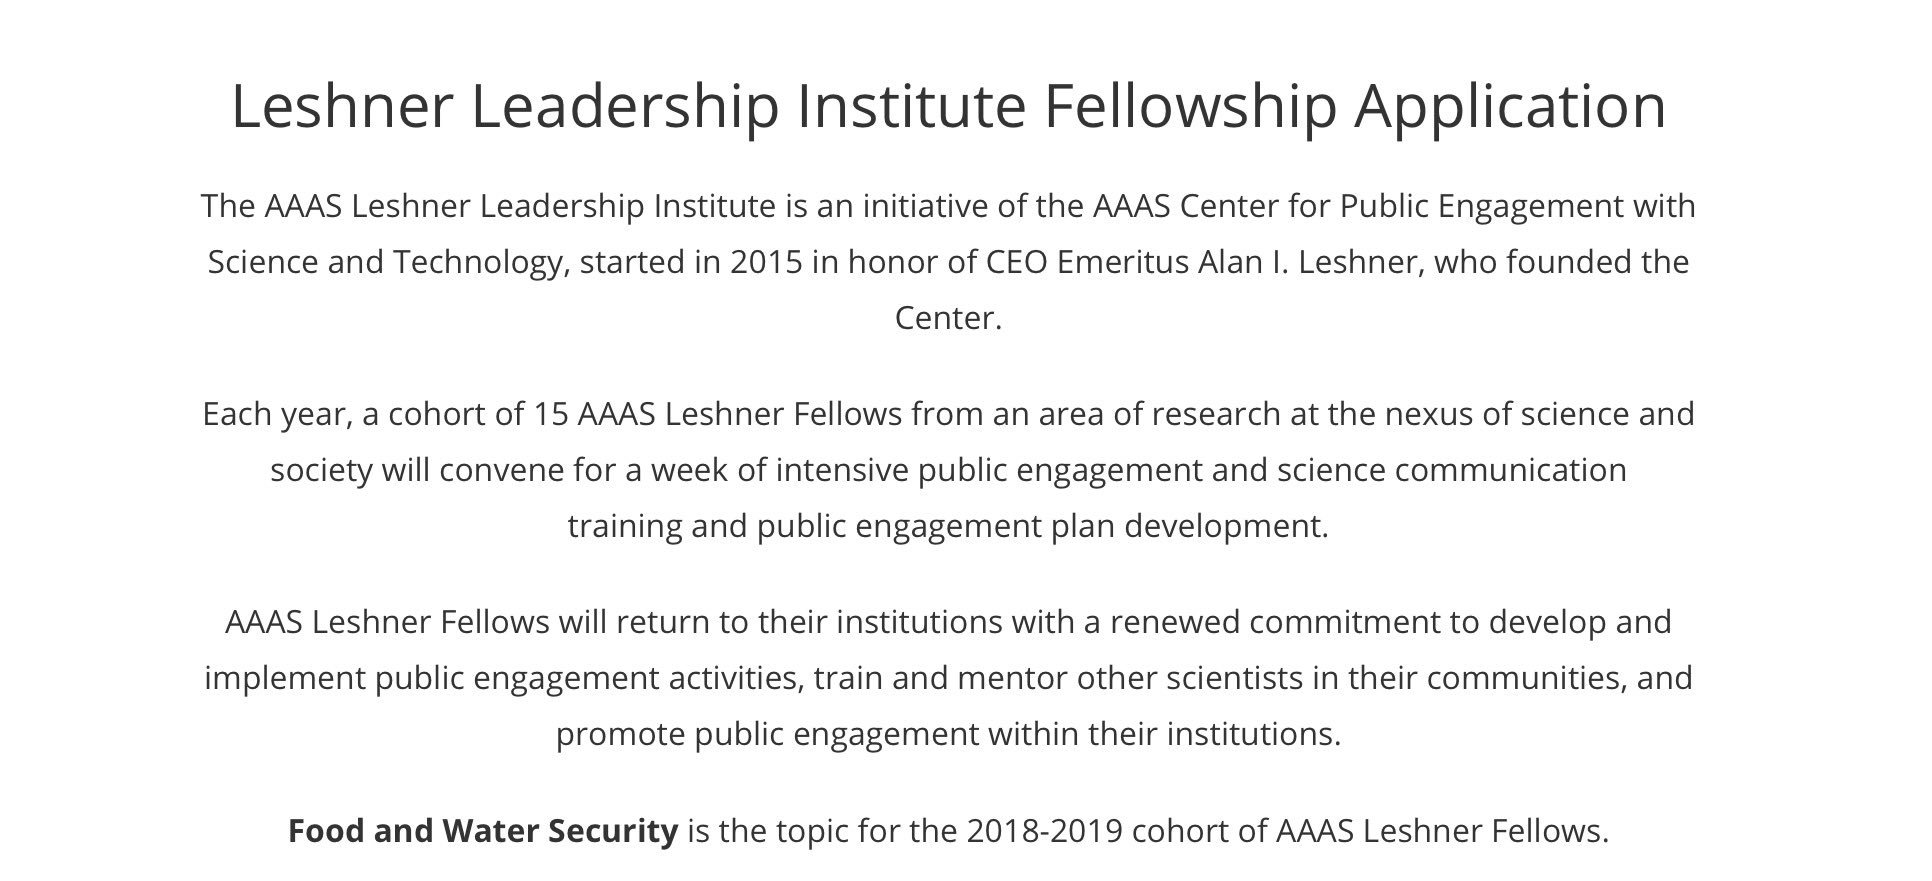 Applications for leadership institute on food & water security due 11/1/17 via @aaas #scipolicy #sciadvocacy #scicomm https://t.co/S71tIqgIIK